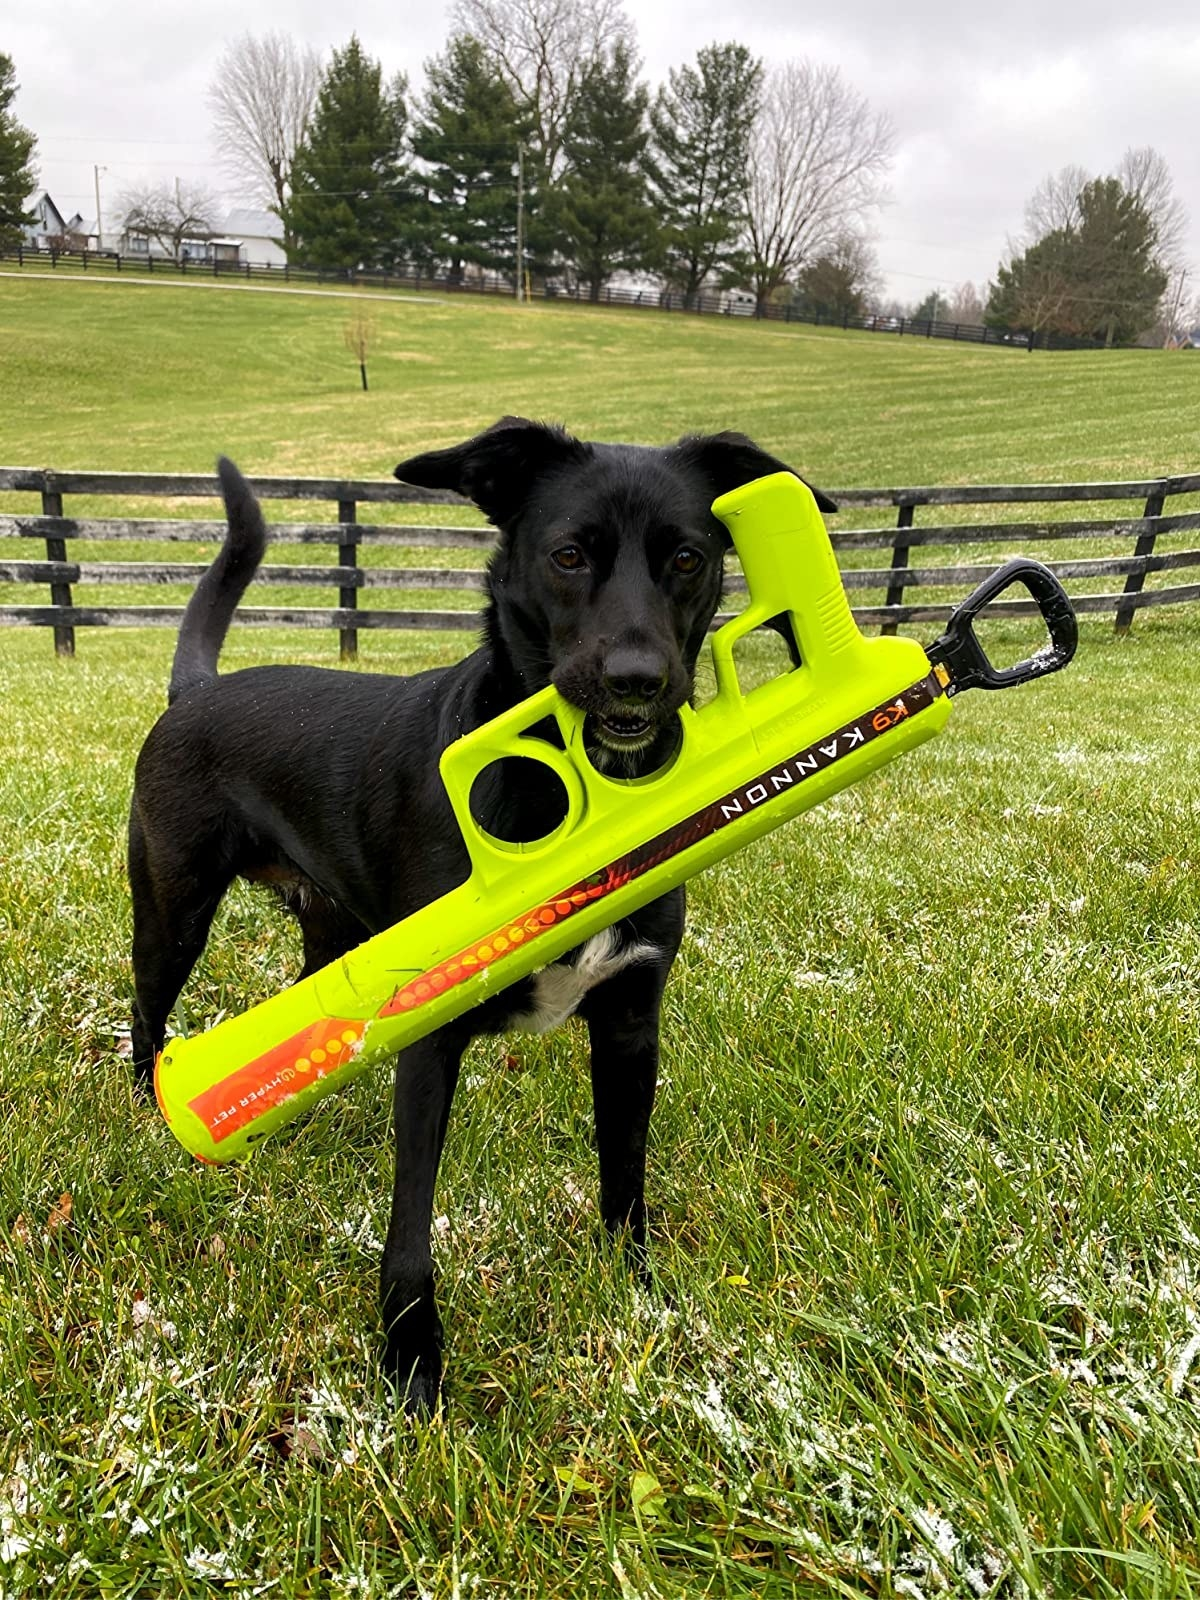 A dog holds the launcher, which looks like a Super Soaker-style large water gun